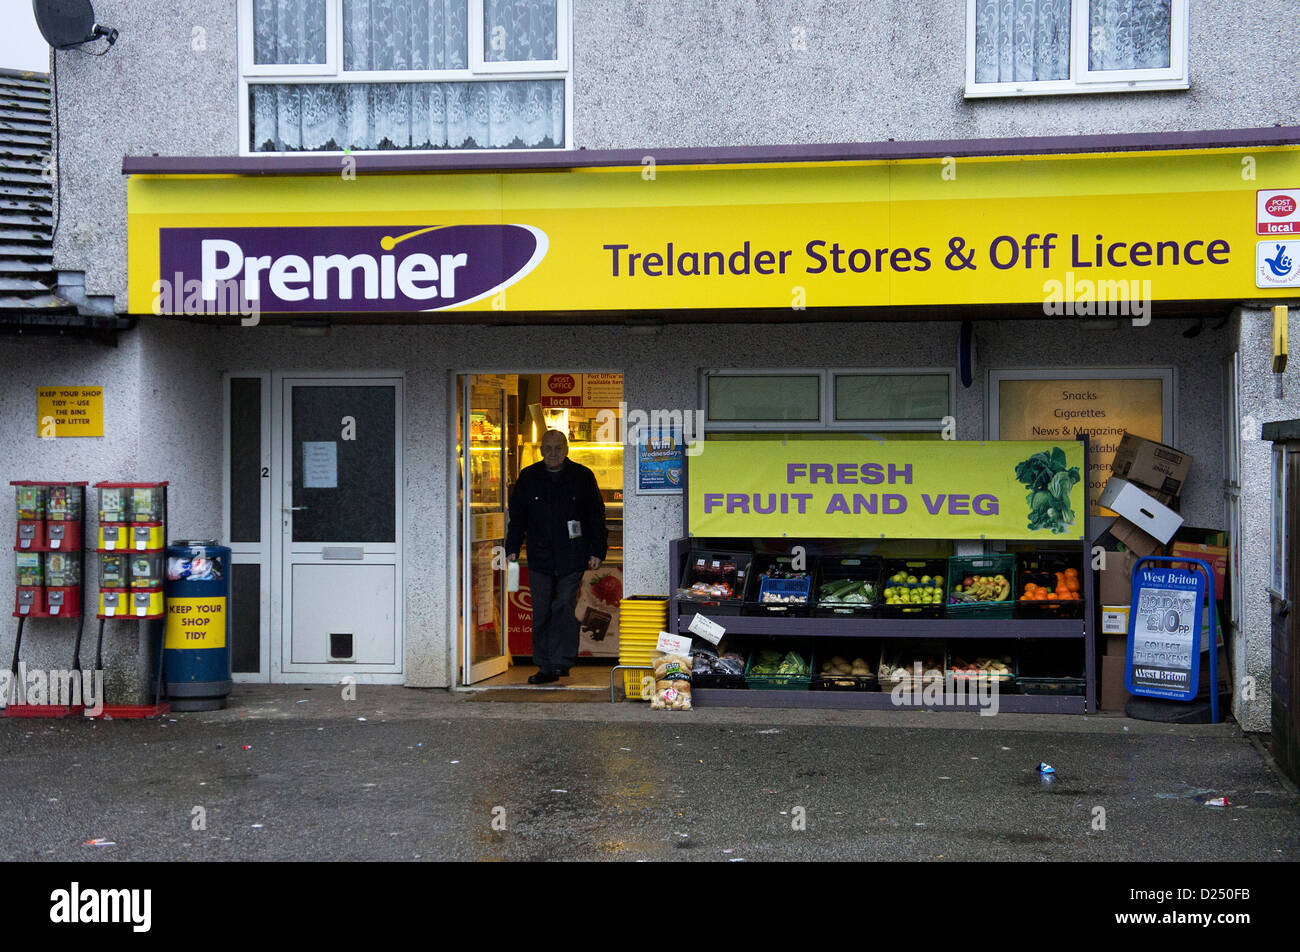 A Premier local stores and off licence - Stock Image